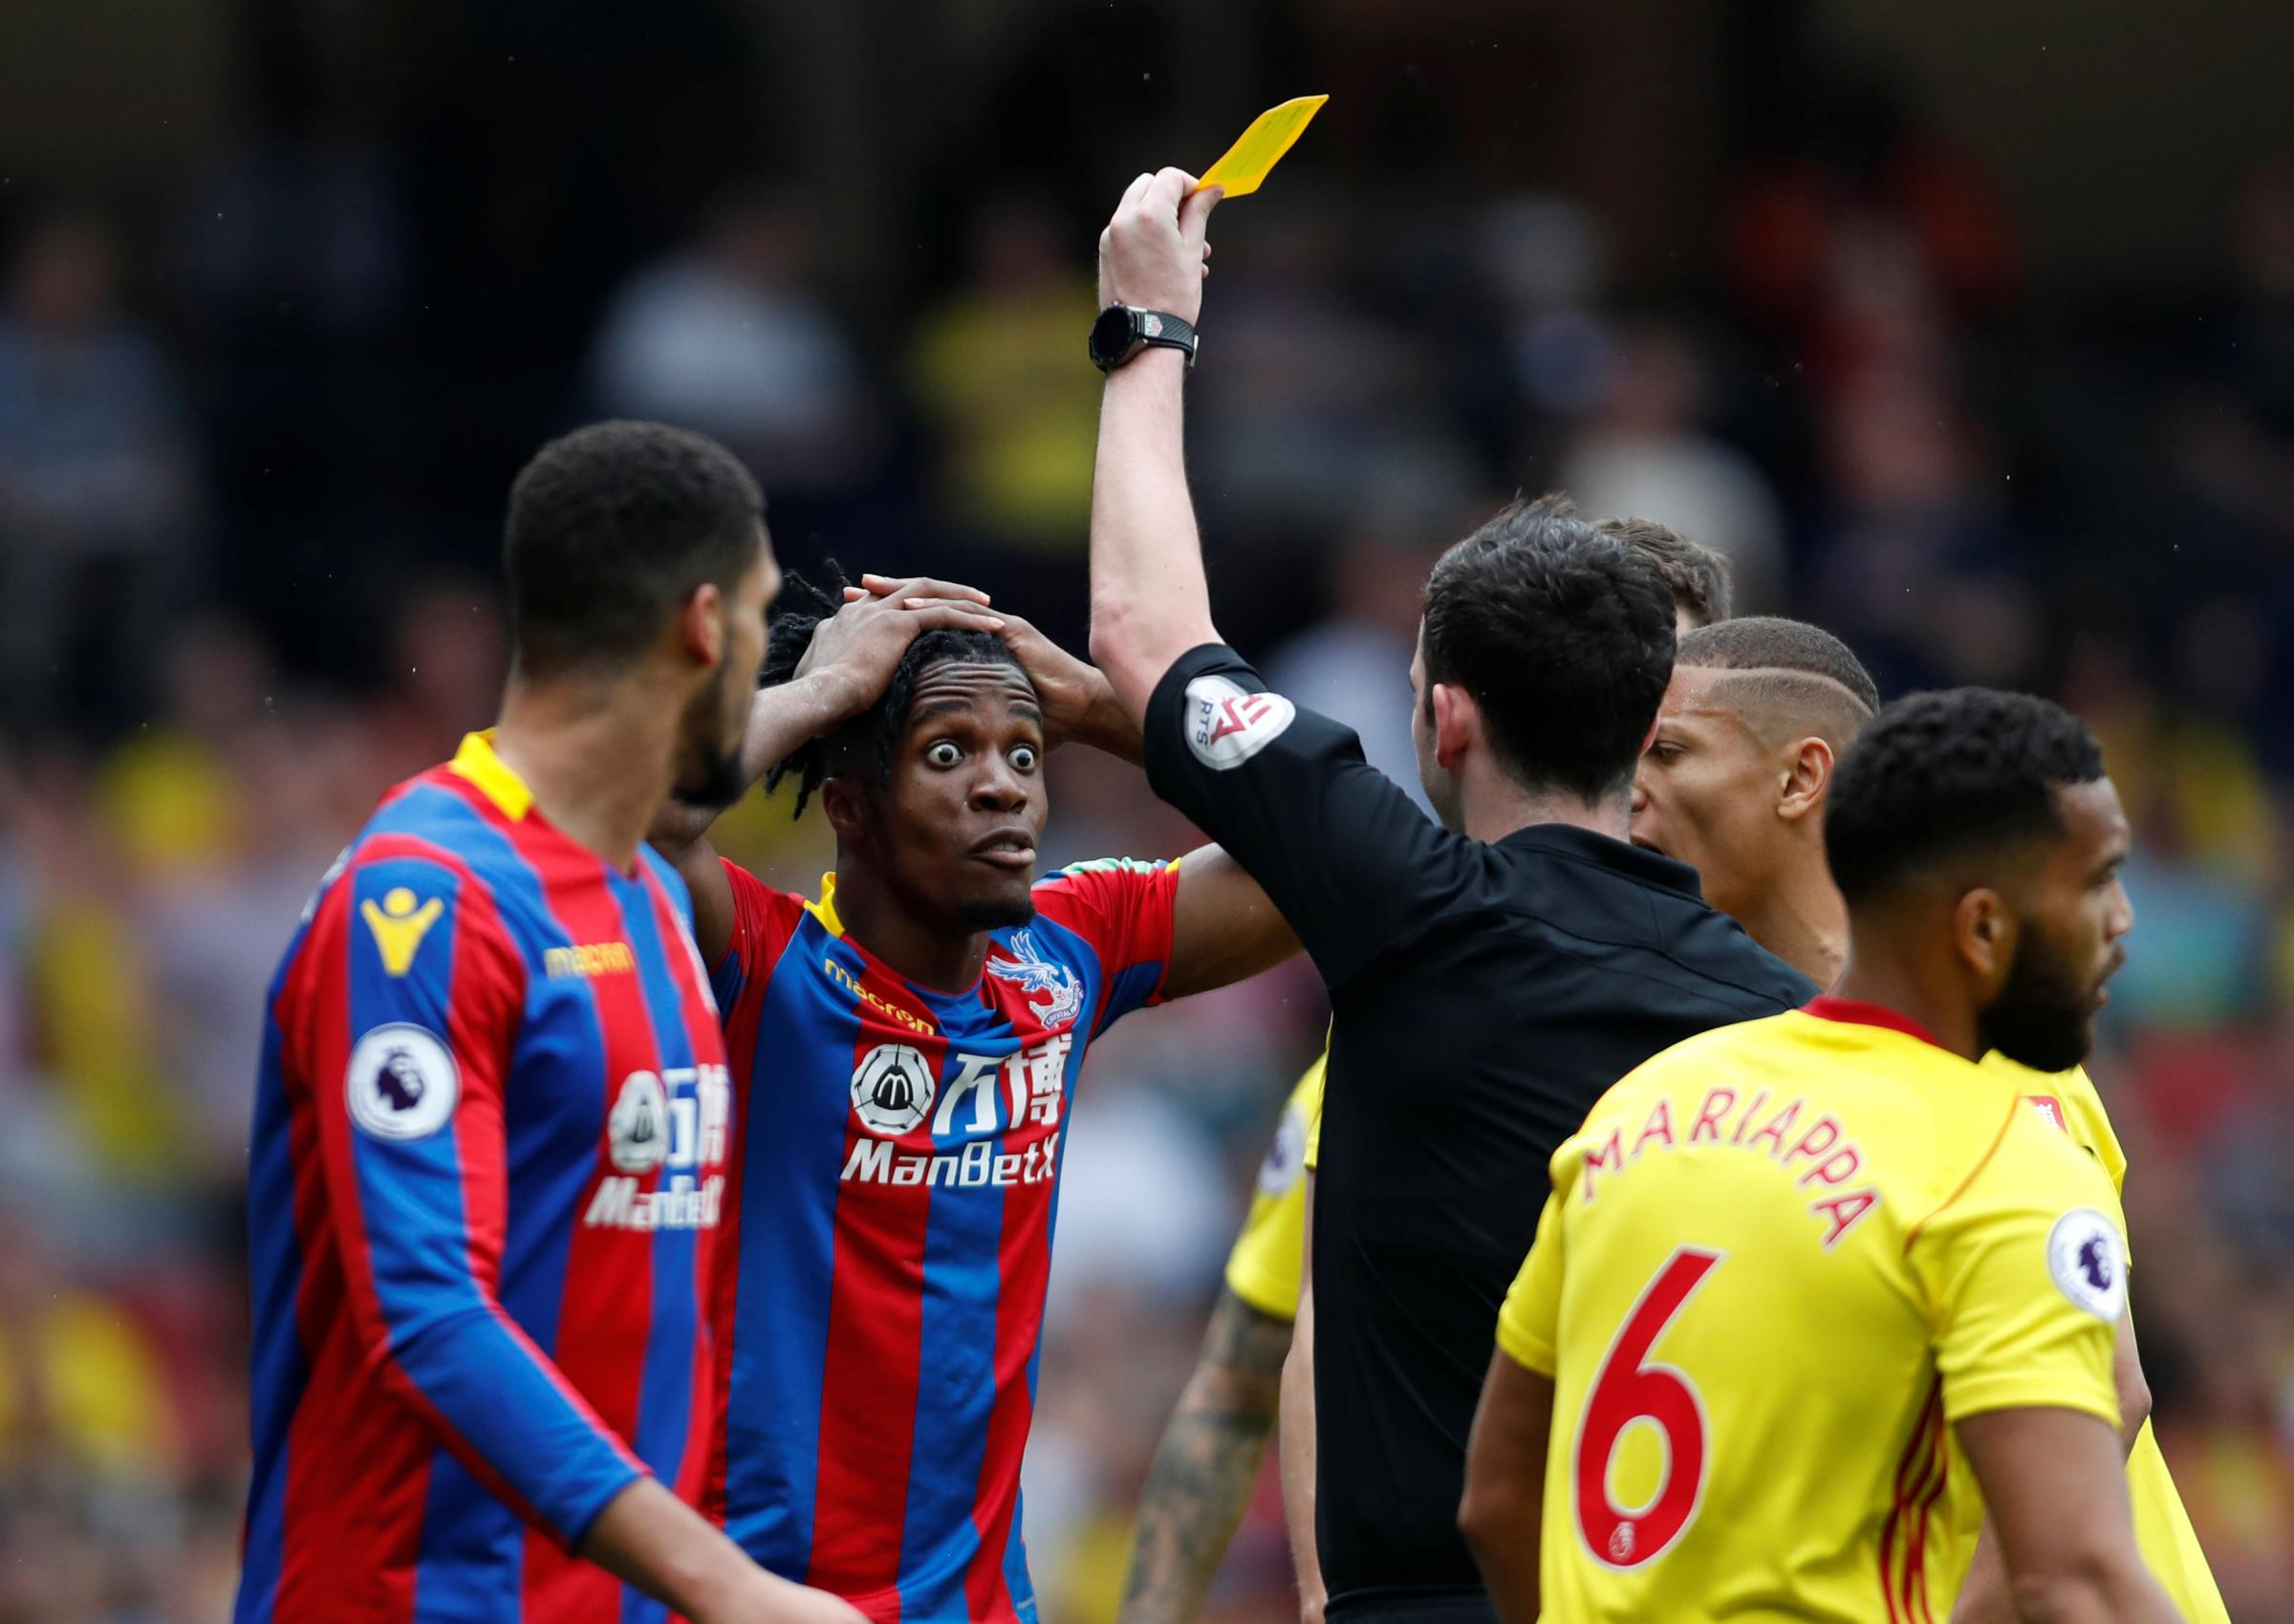 Watford vs. Crystal Palace - Football Match Report